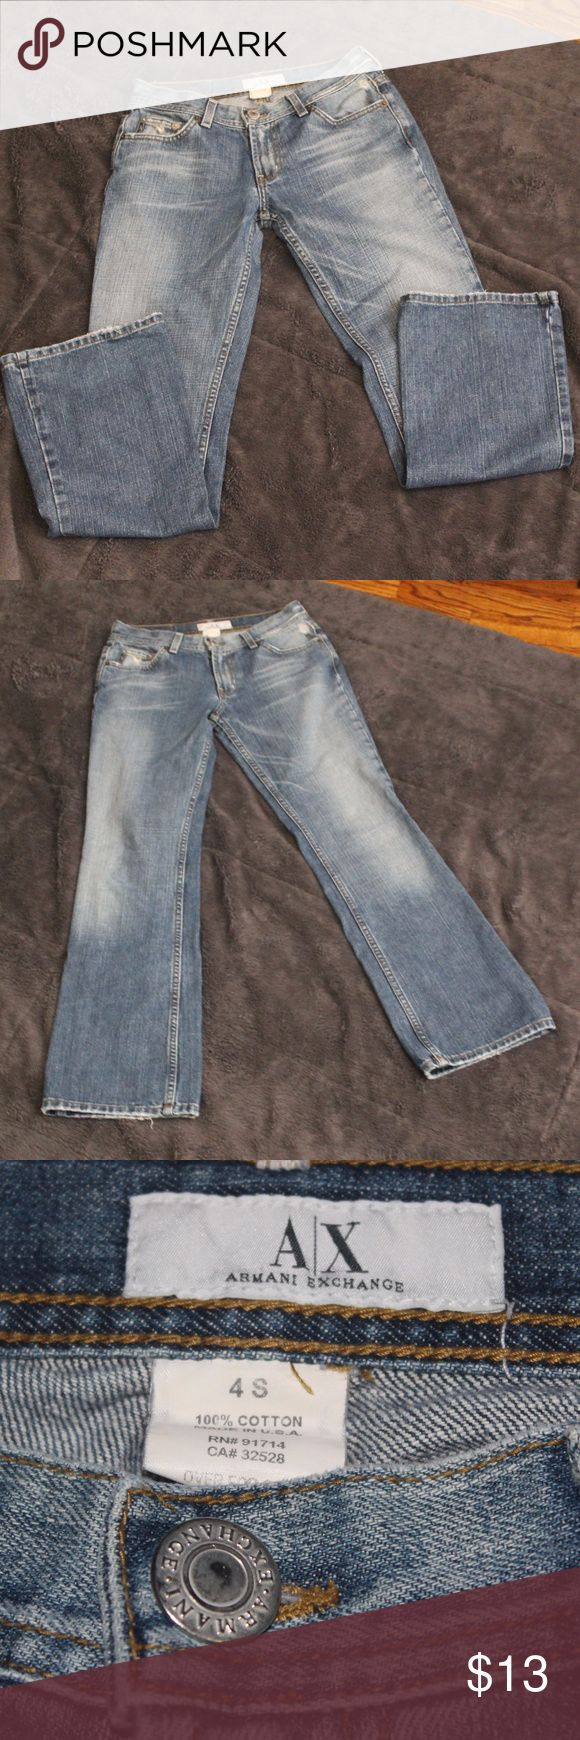 A/X Jeans These jeans are already broken in for you!  They do have some wear but the buttons and zipper work fine, in great shape, and no major holes/rips/tears.  Please see pics and I am happy to answer any questions! A/X Armani Exchange Jeans Boot Cut